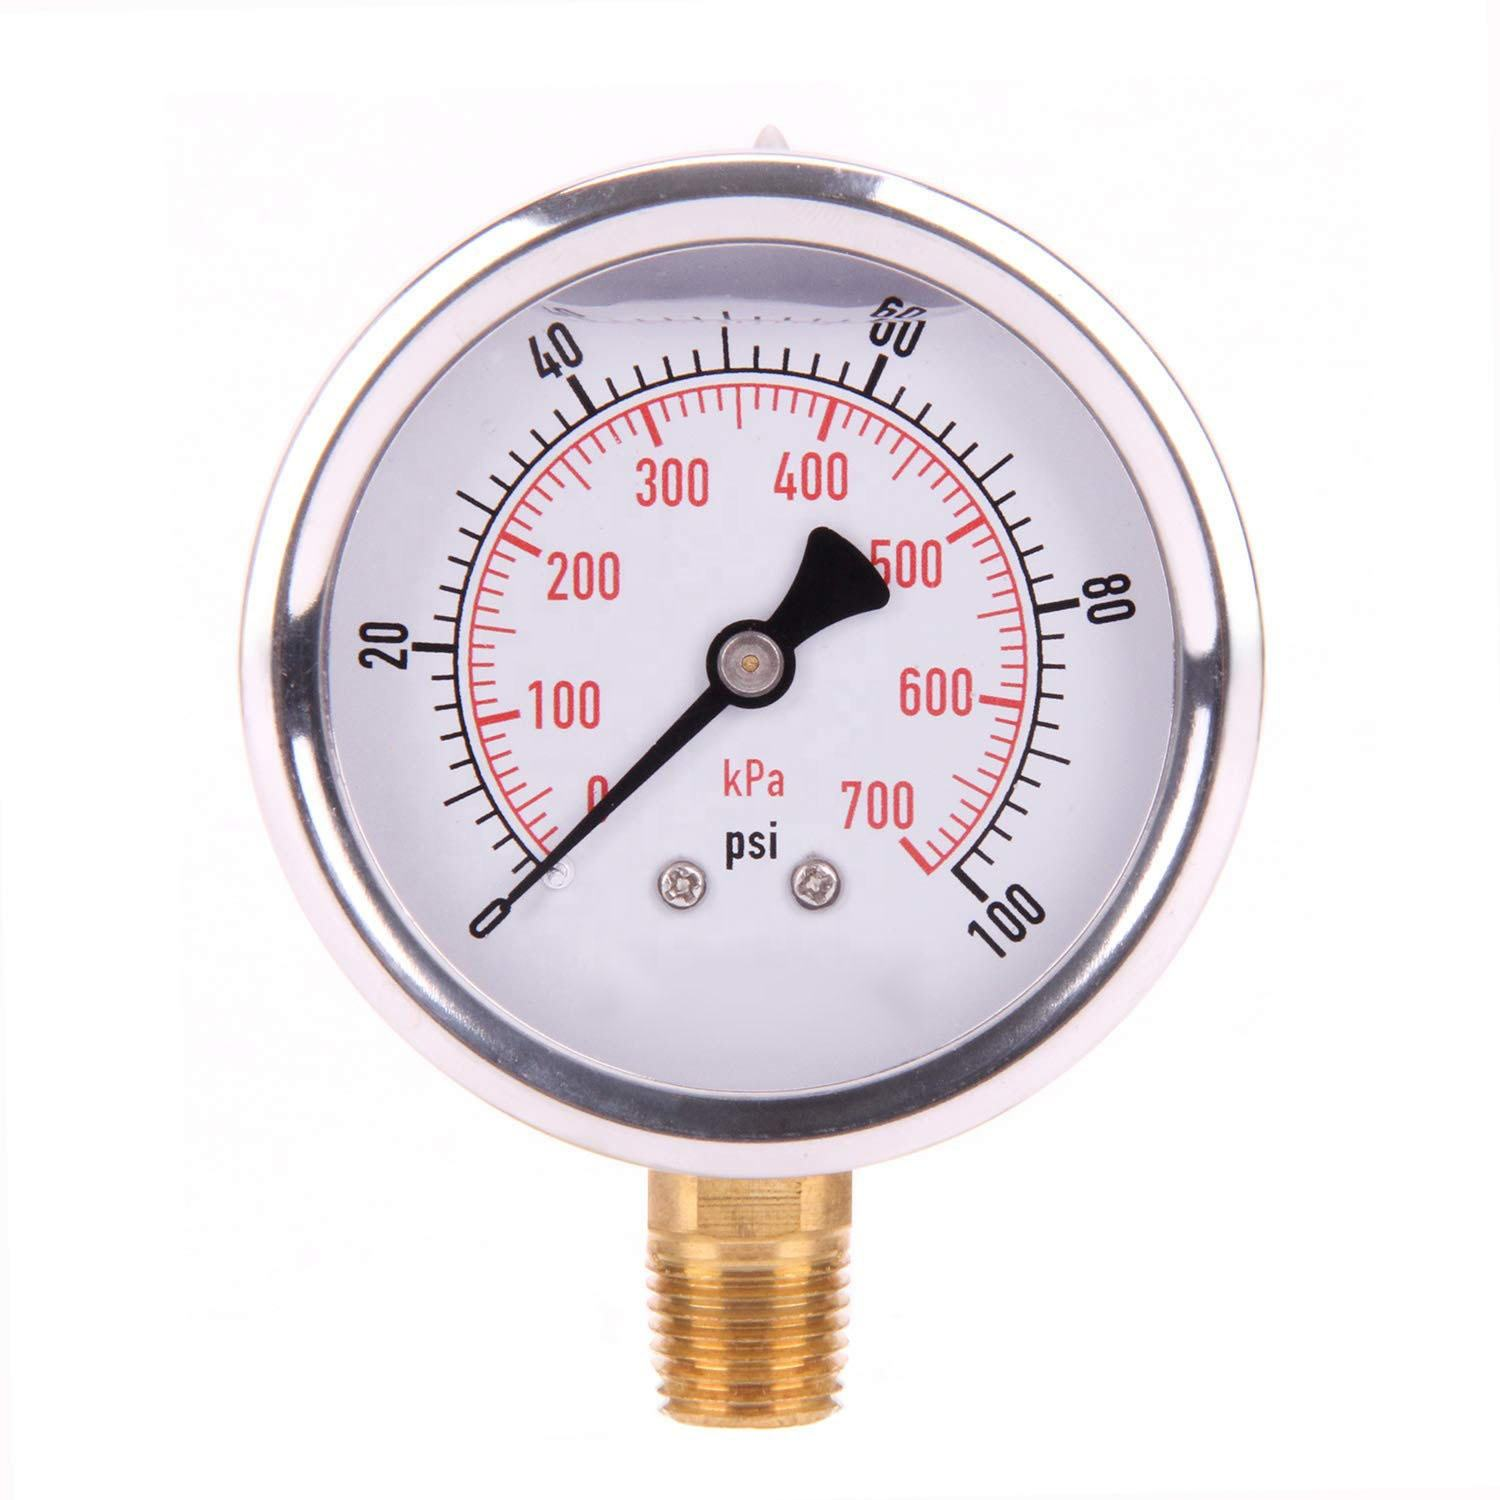 "63mm dry 1/4"" NPT Lower Mount Pressure Gauge"